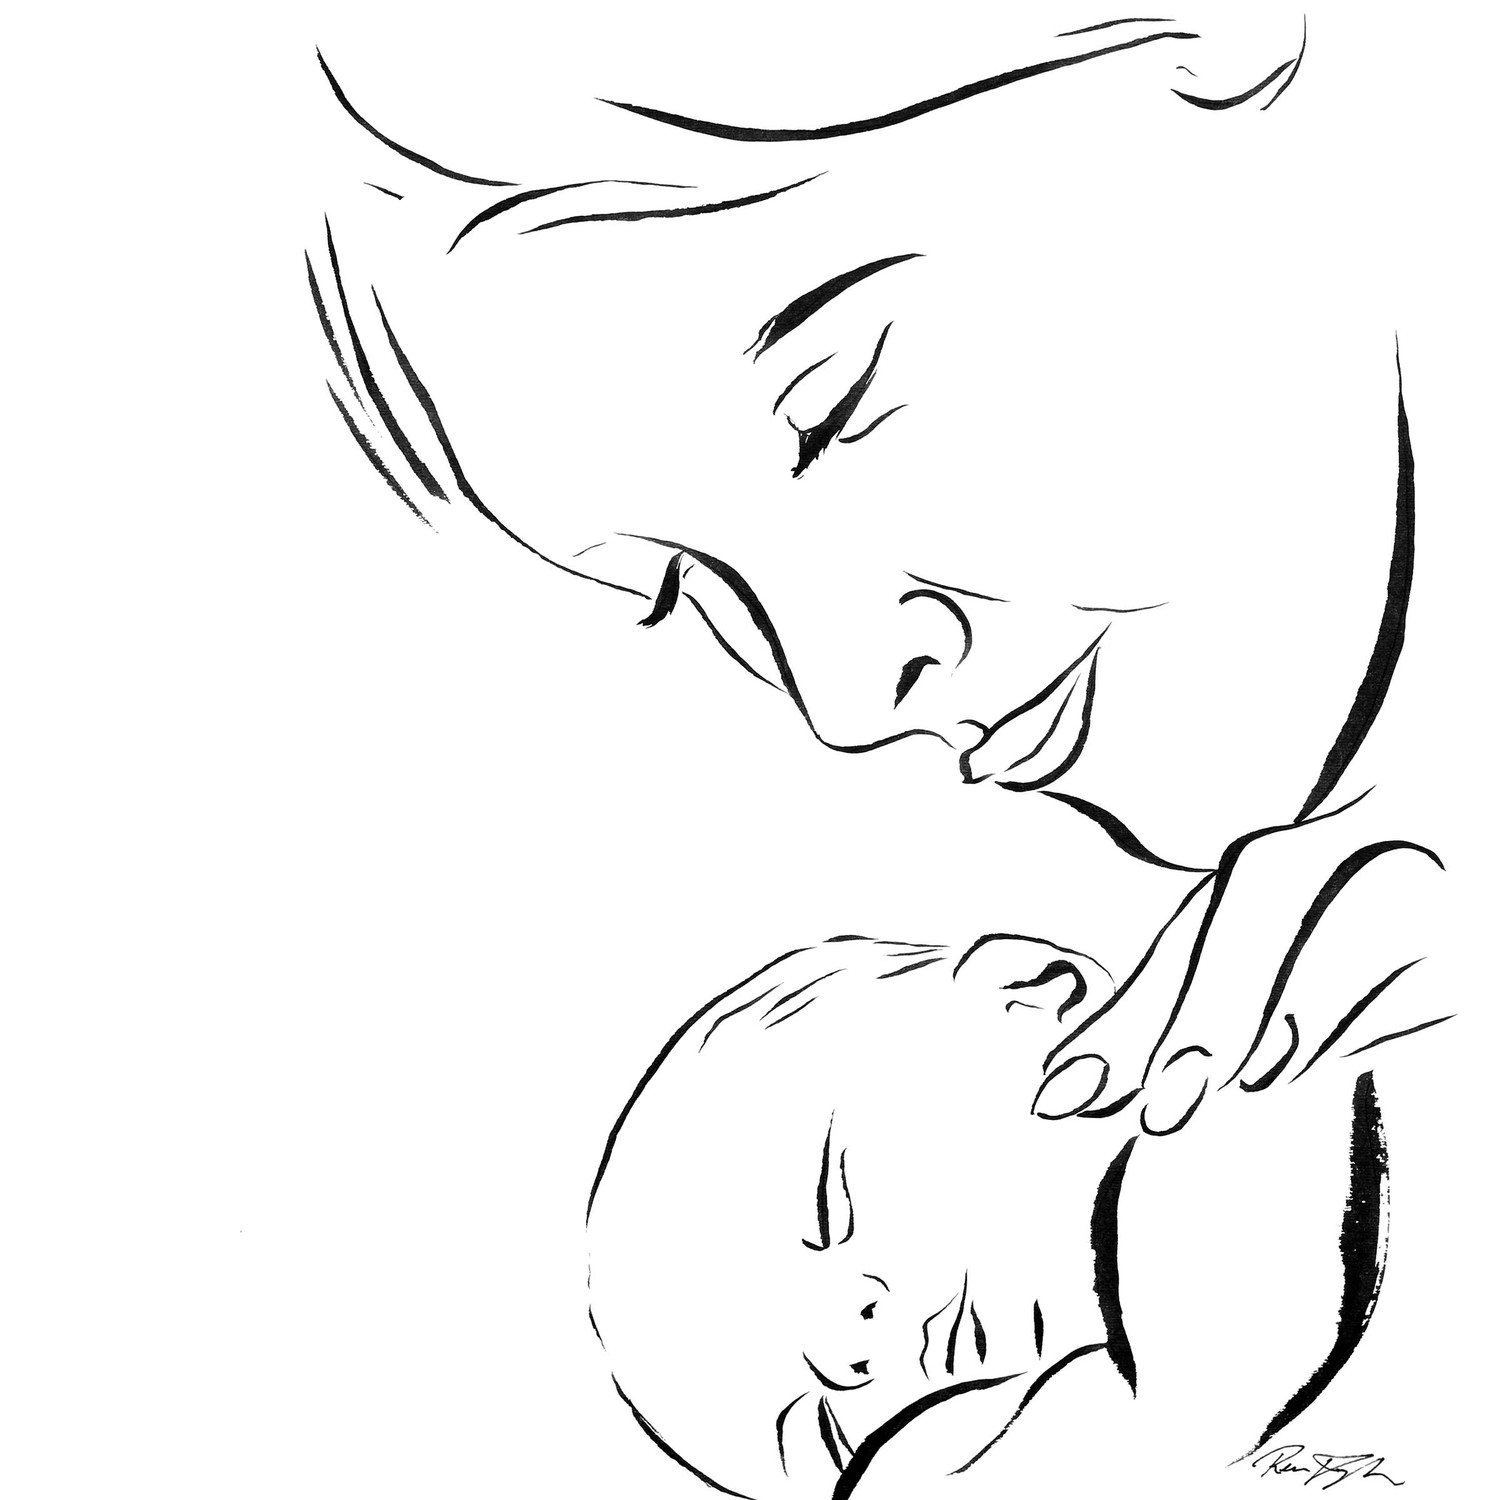 1500x1500 Mother And Child Drawing Mother And Child Realistic Art, Pencil